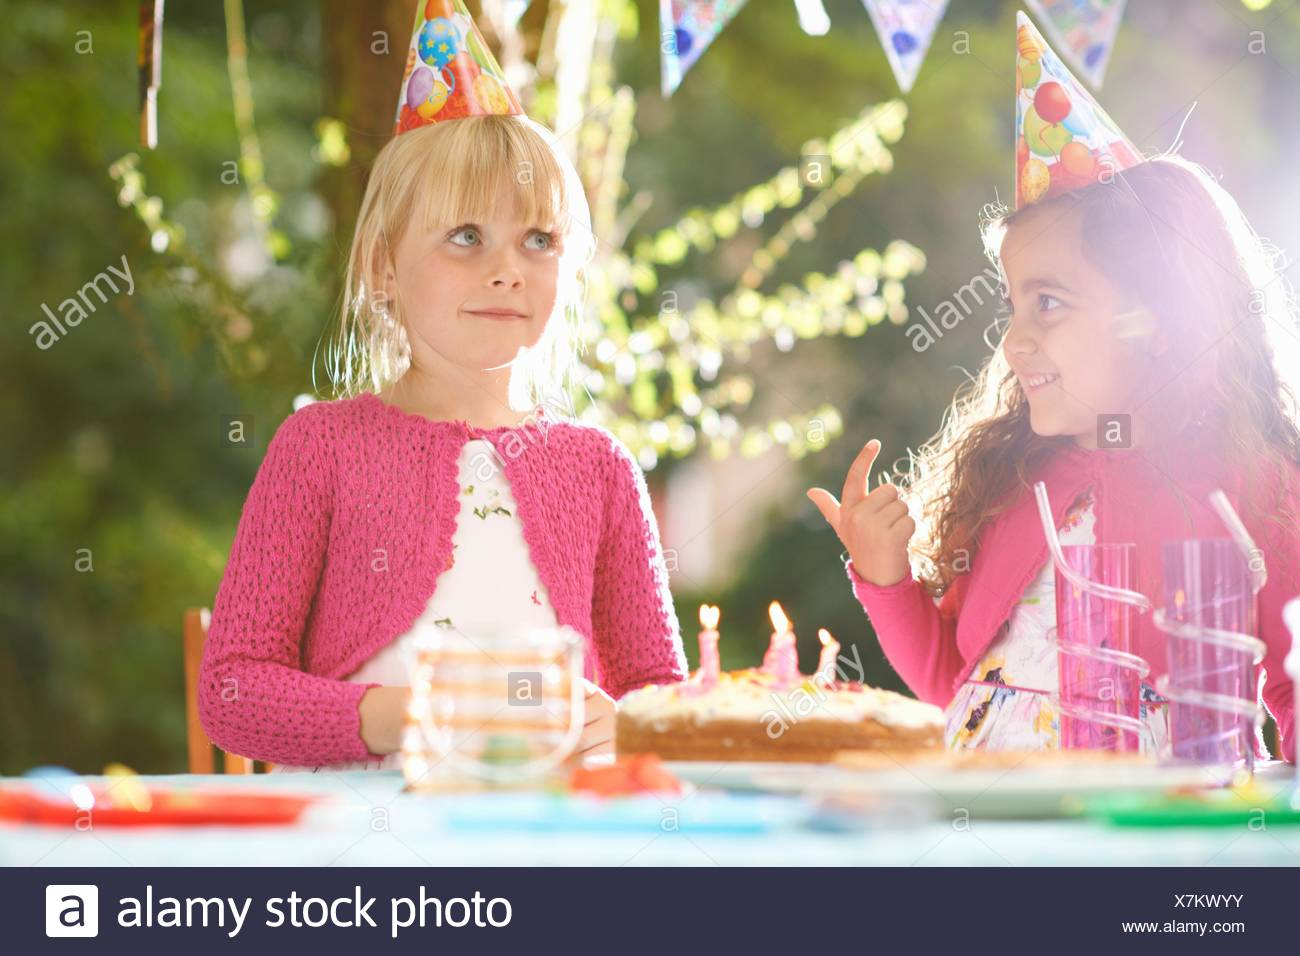 Girls with finger in birthday cake at  garden birthday party - Stock Image